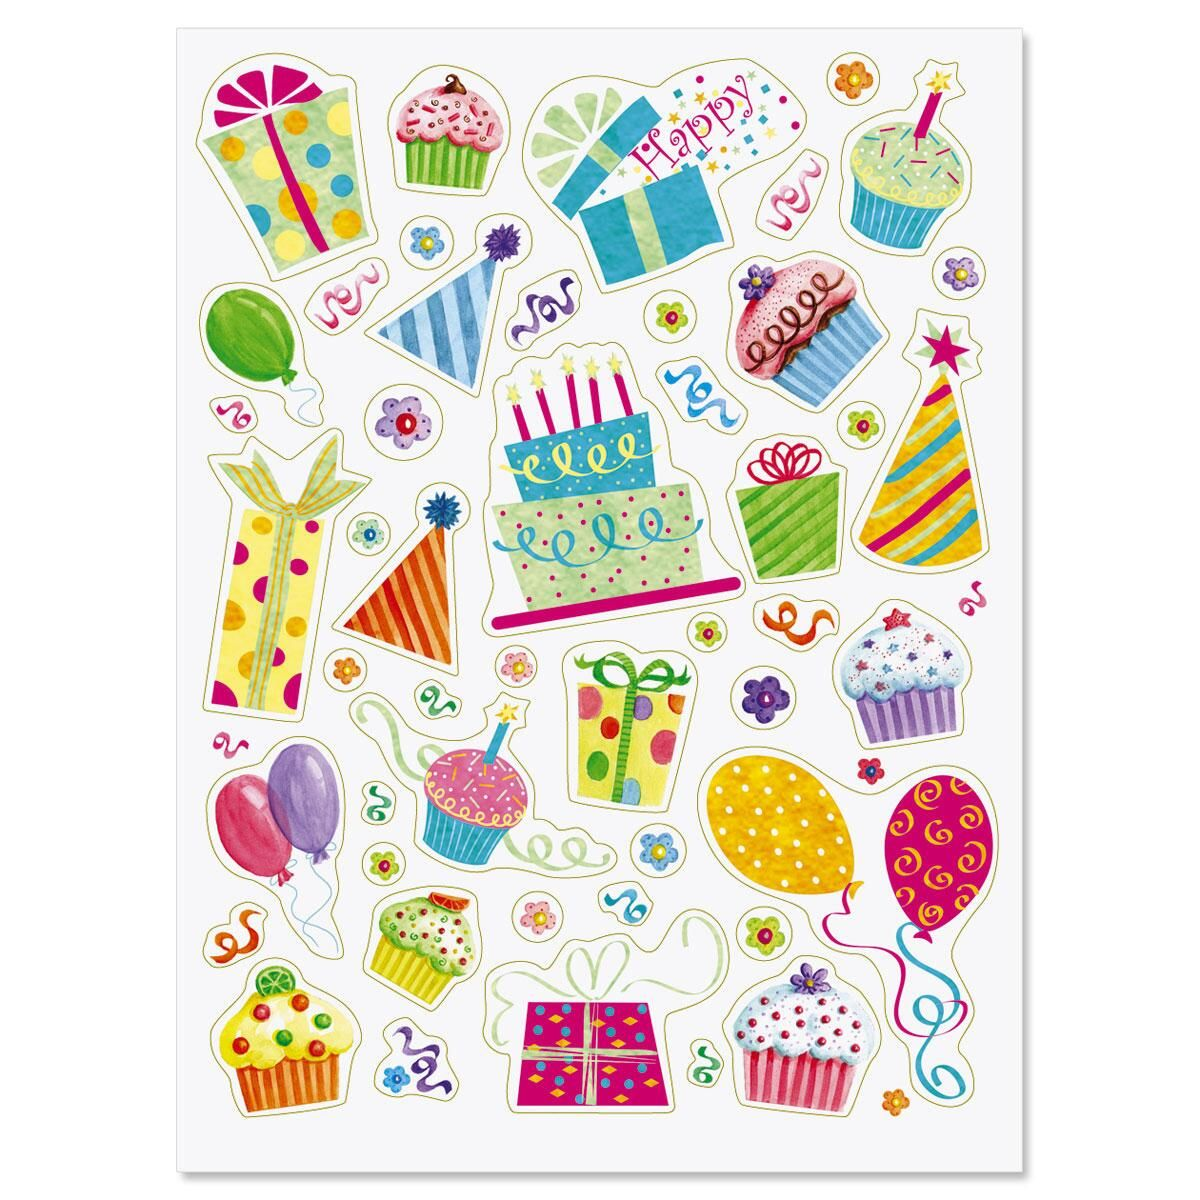 Birthday Party Stickers - Buy 1 Get 1 Free